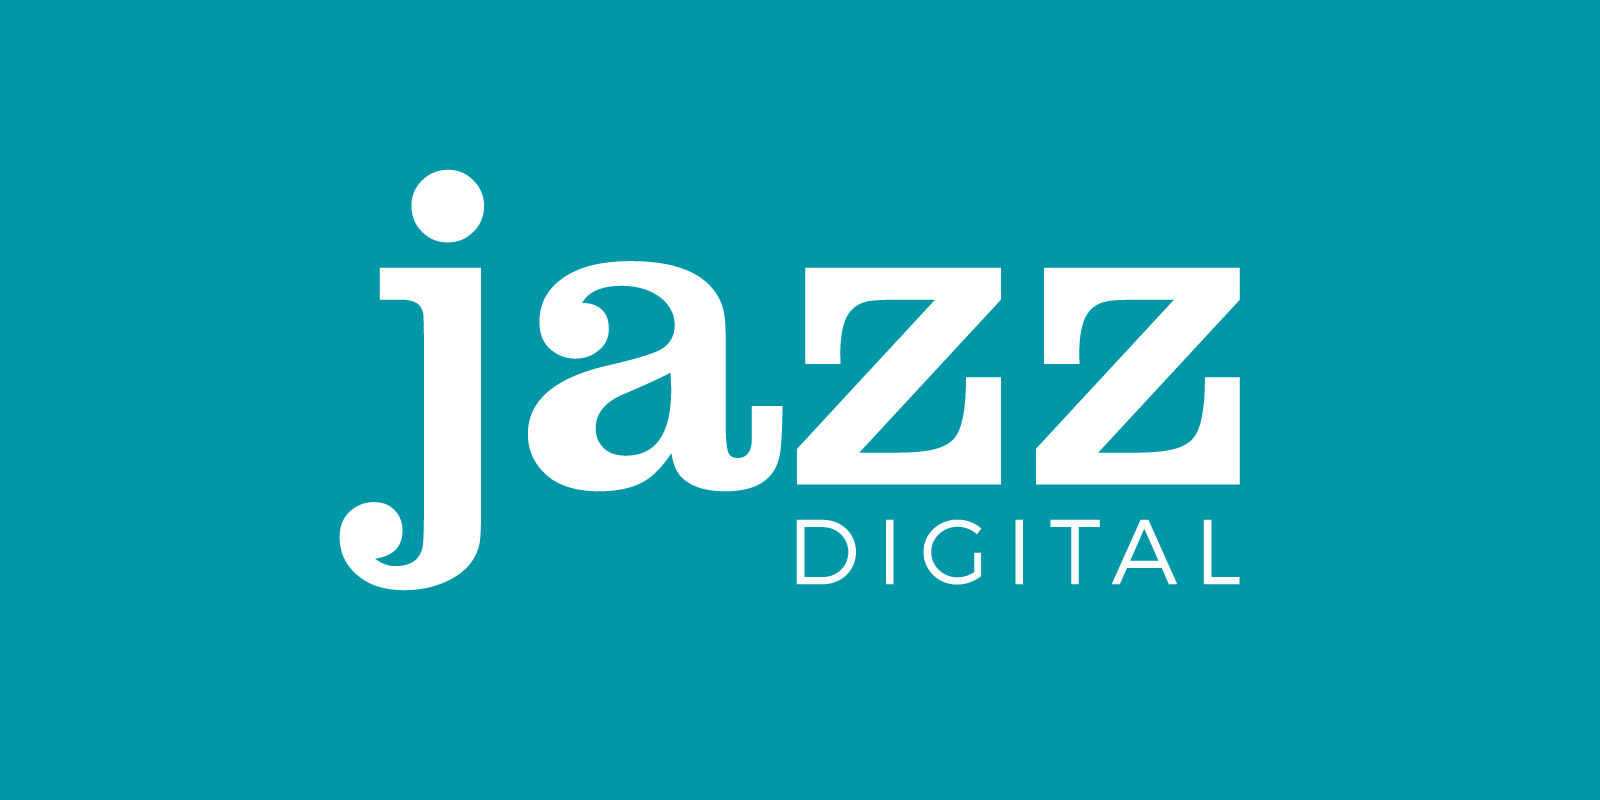 jazz digital